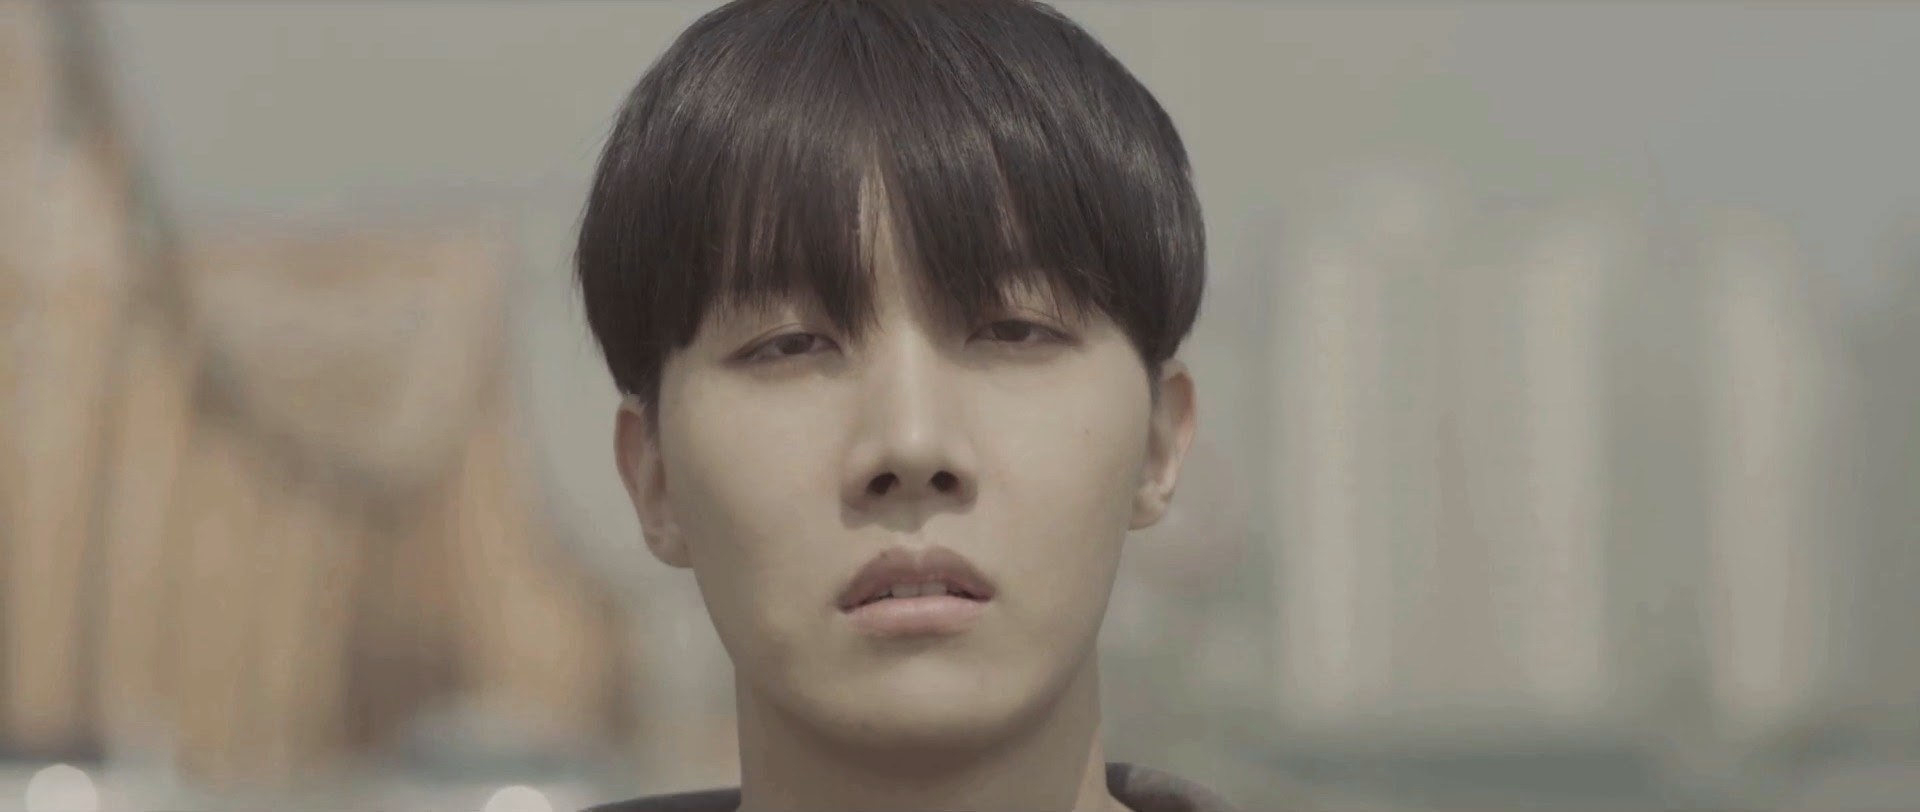 Bangtan's J-Hope in I Need You MV